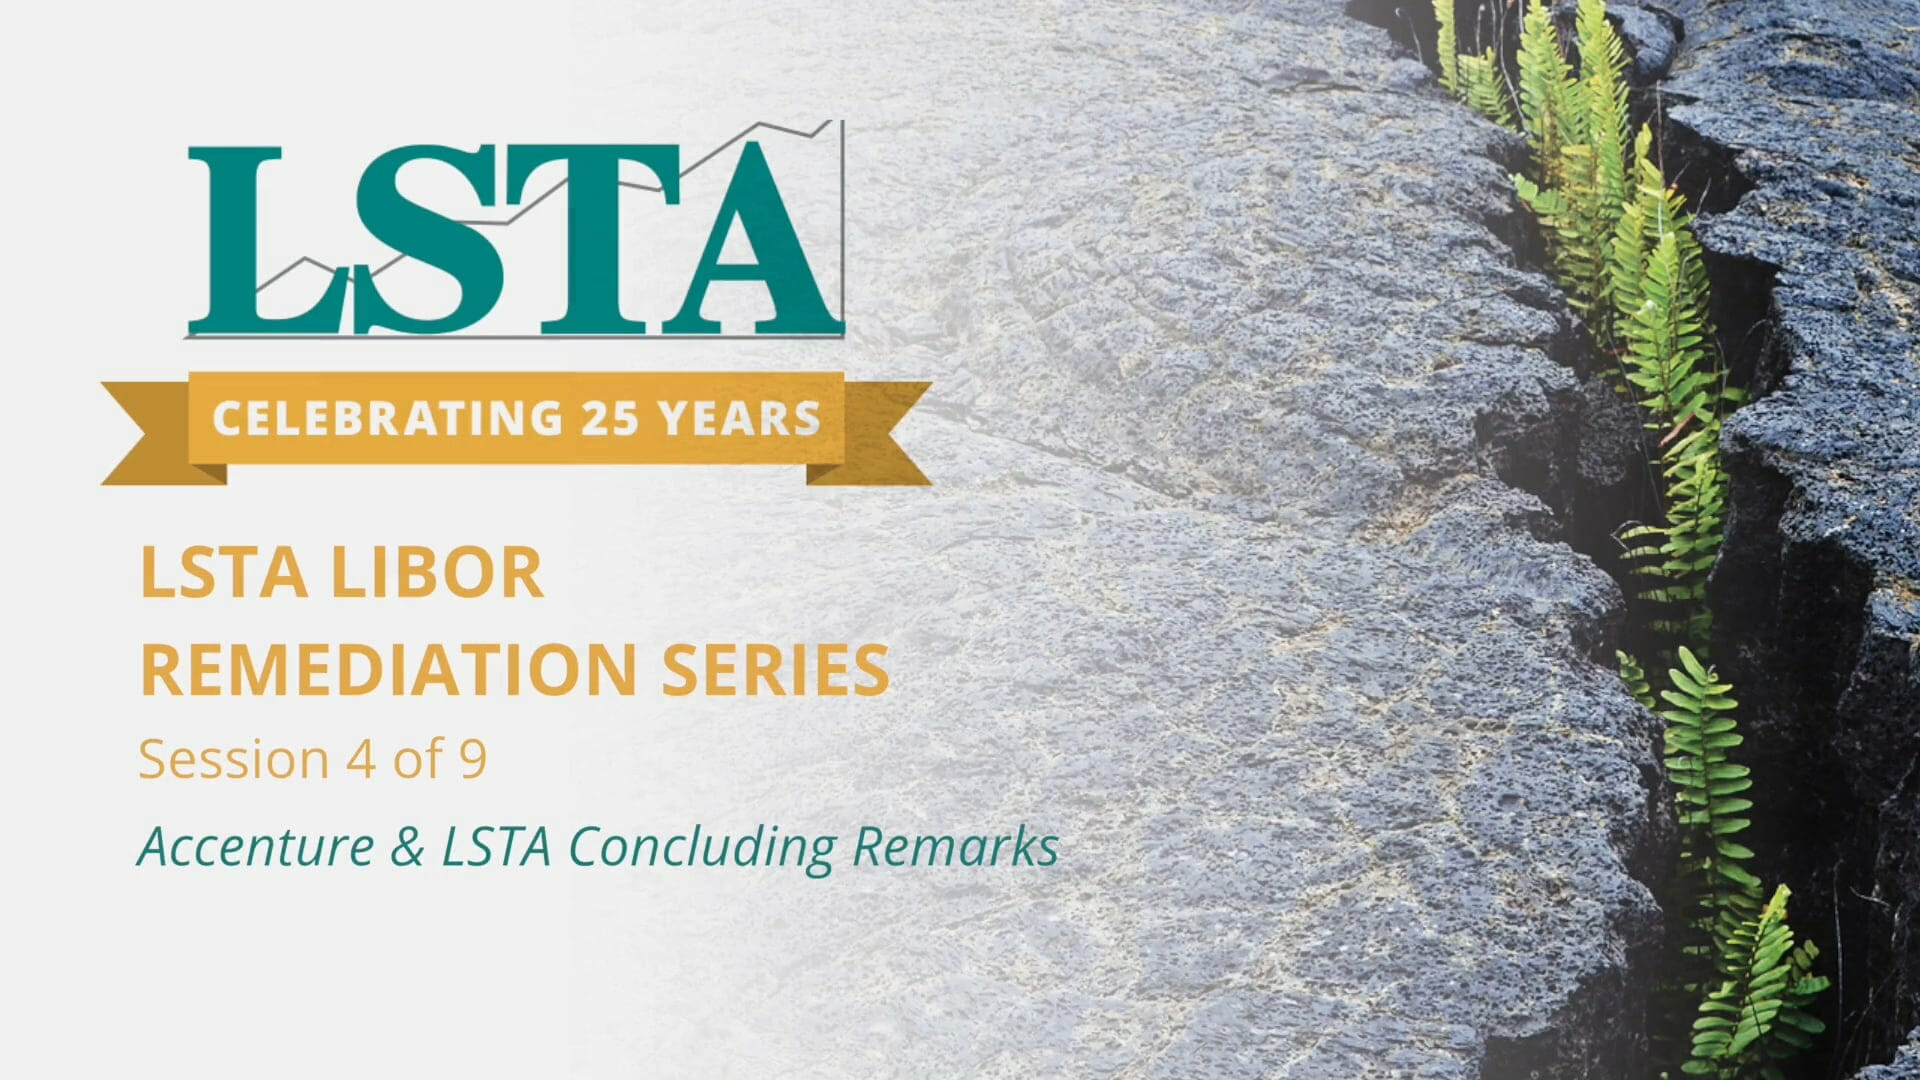 LSTA LIBOR Remediation Series Video – Accenture & Concluding Remarks